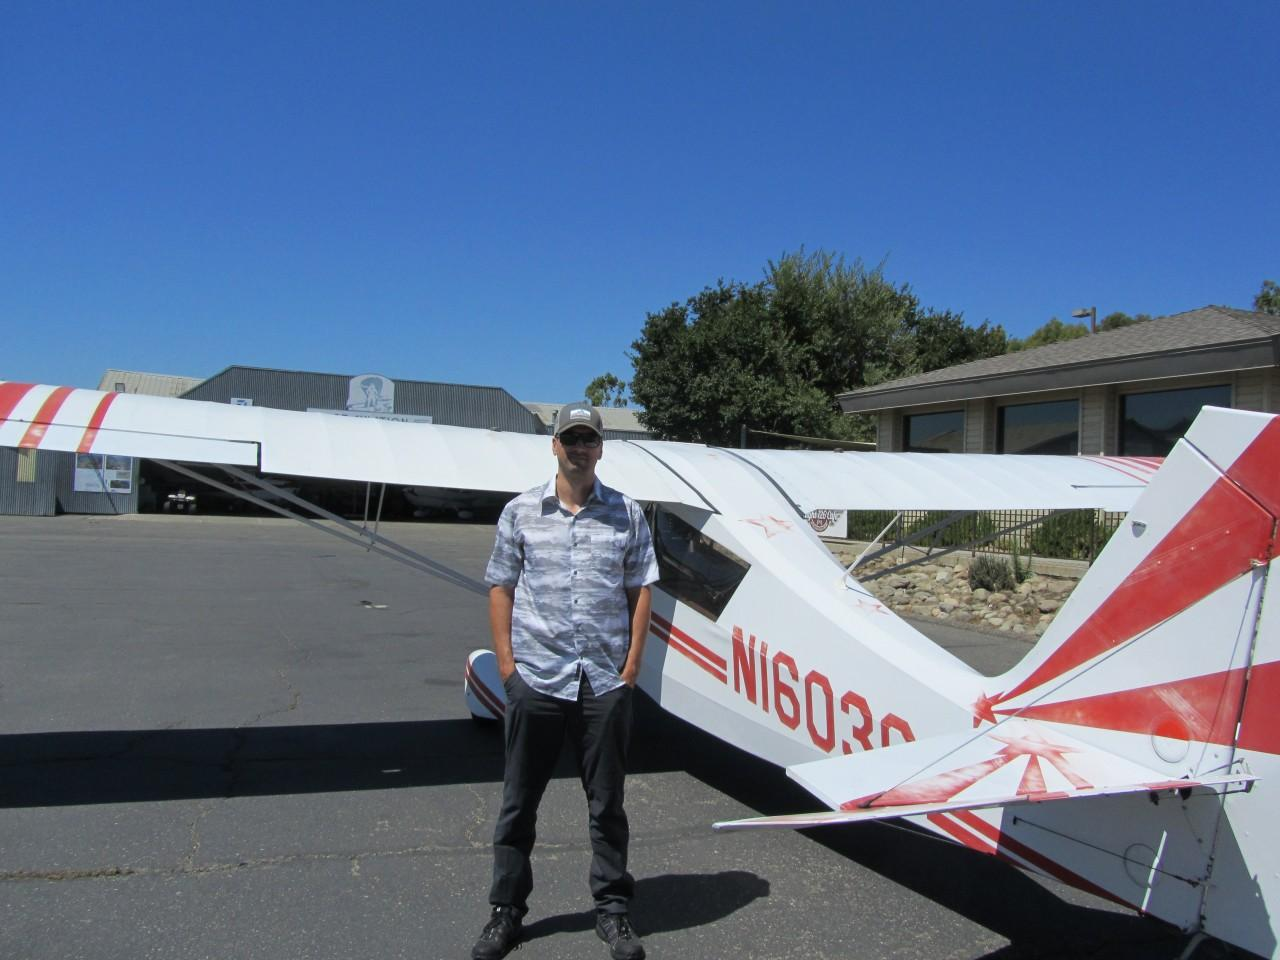 Tailwheel Endorsement - Chris Copenheaver!